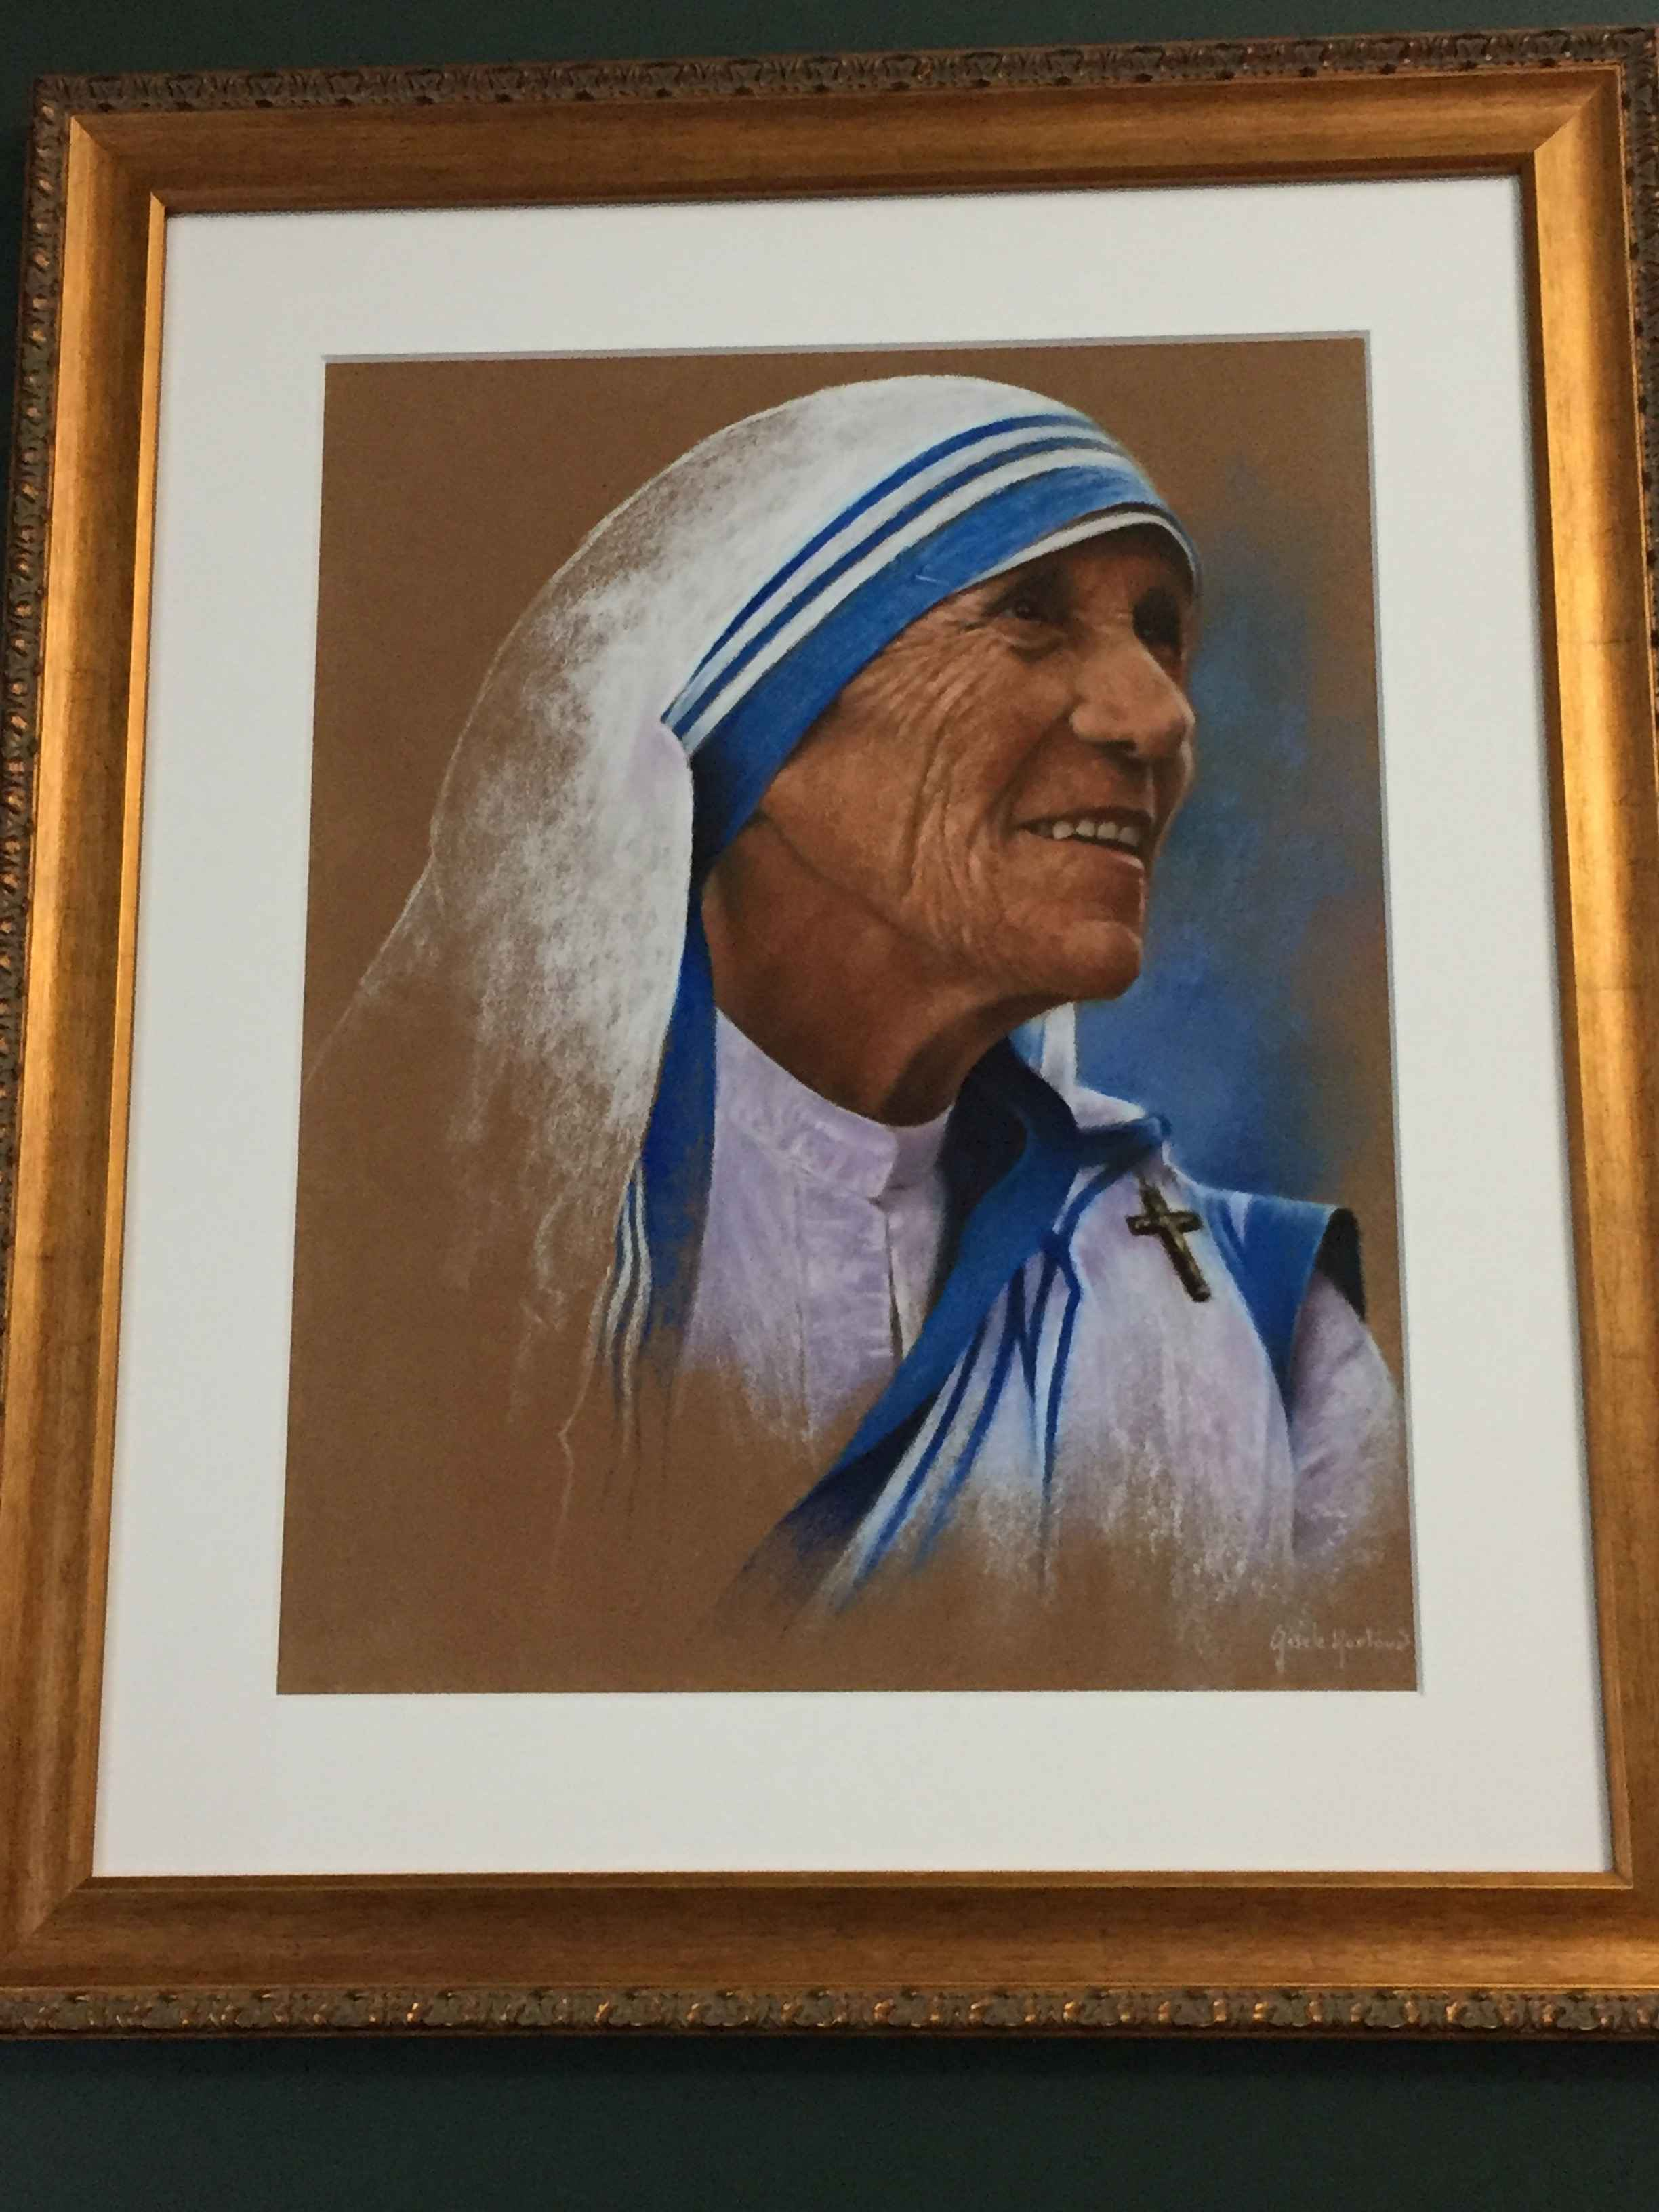 Holy Mother Teresa by  Gisele Hurtaud - Masterpiece Online